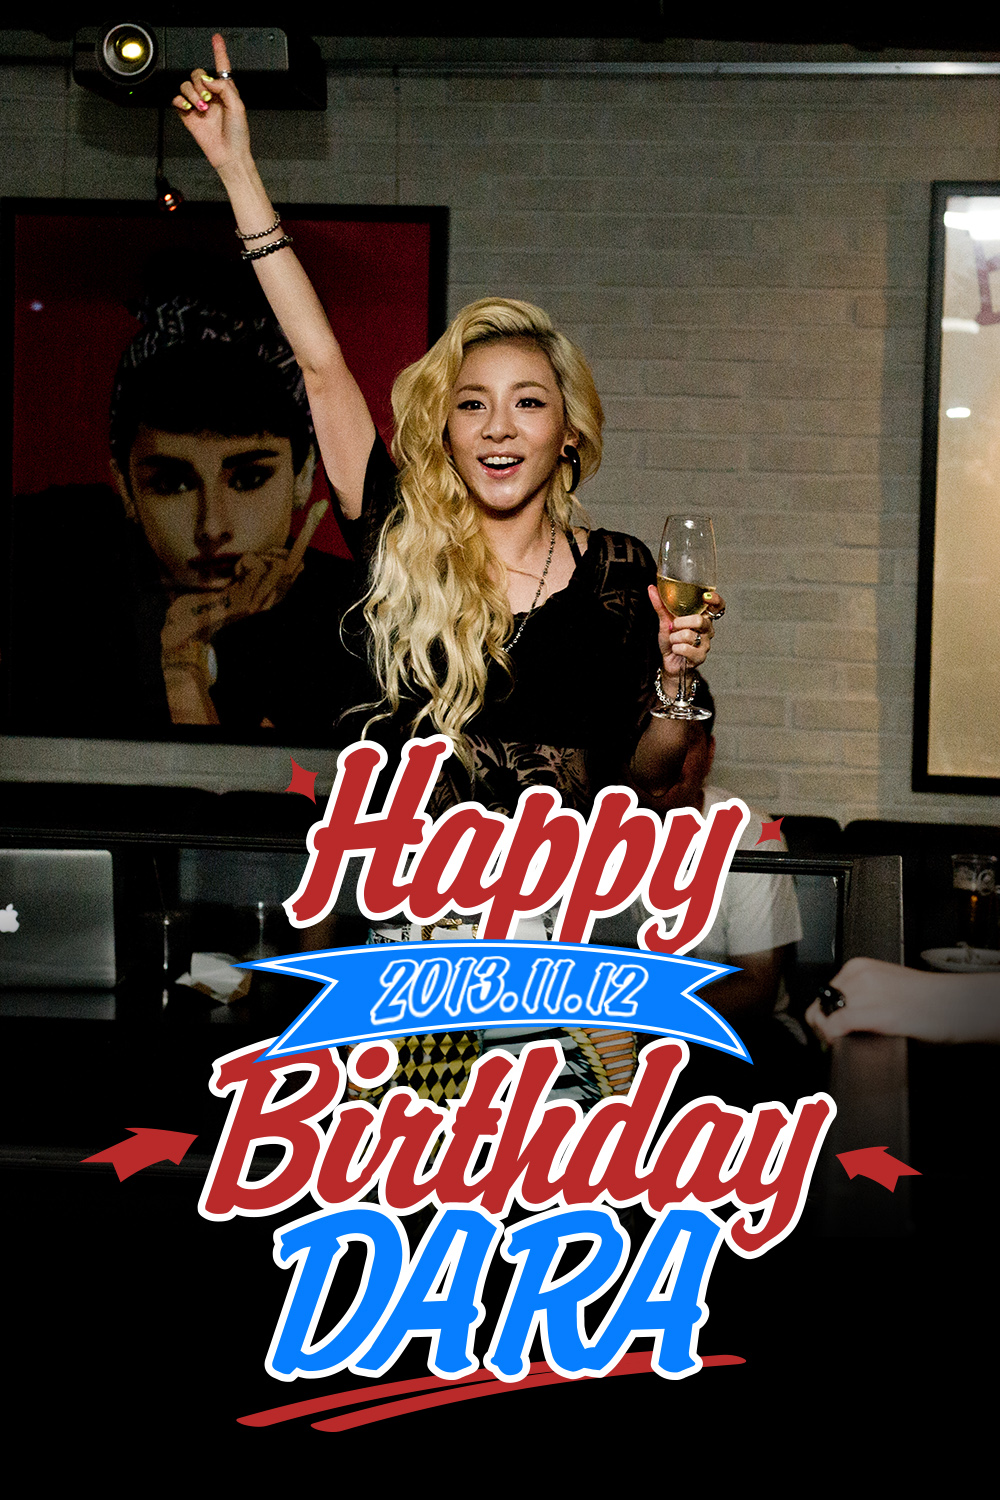 Dara Birthday Poster